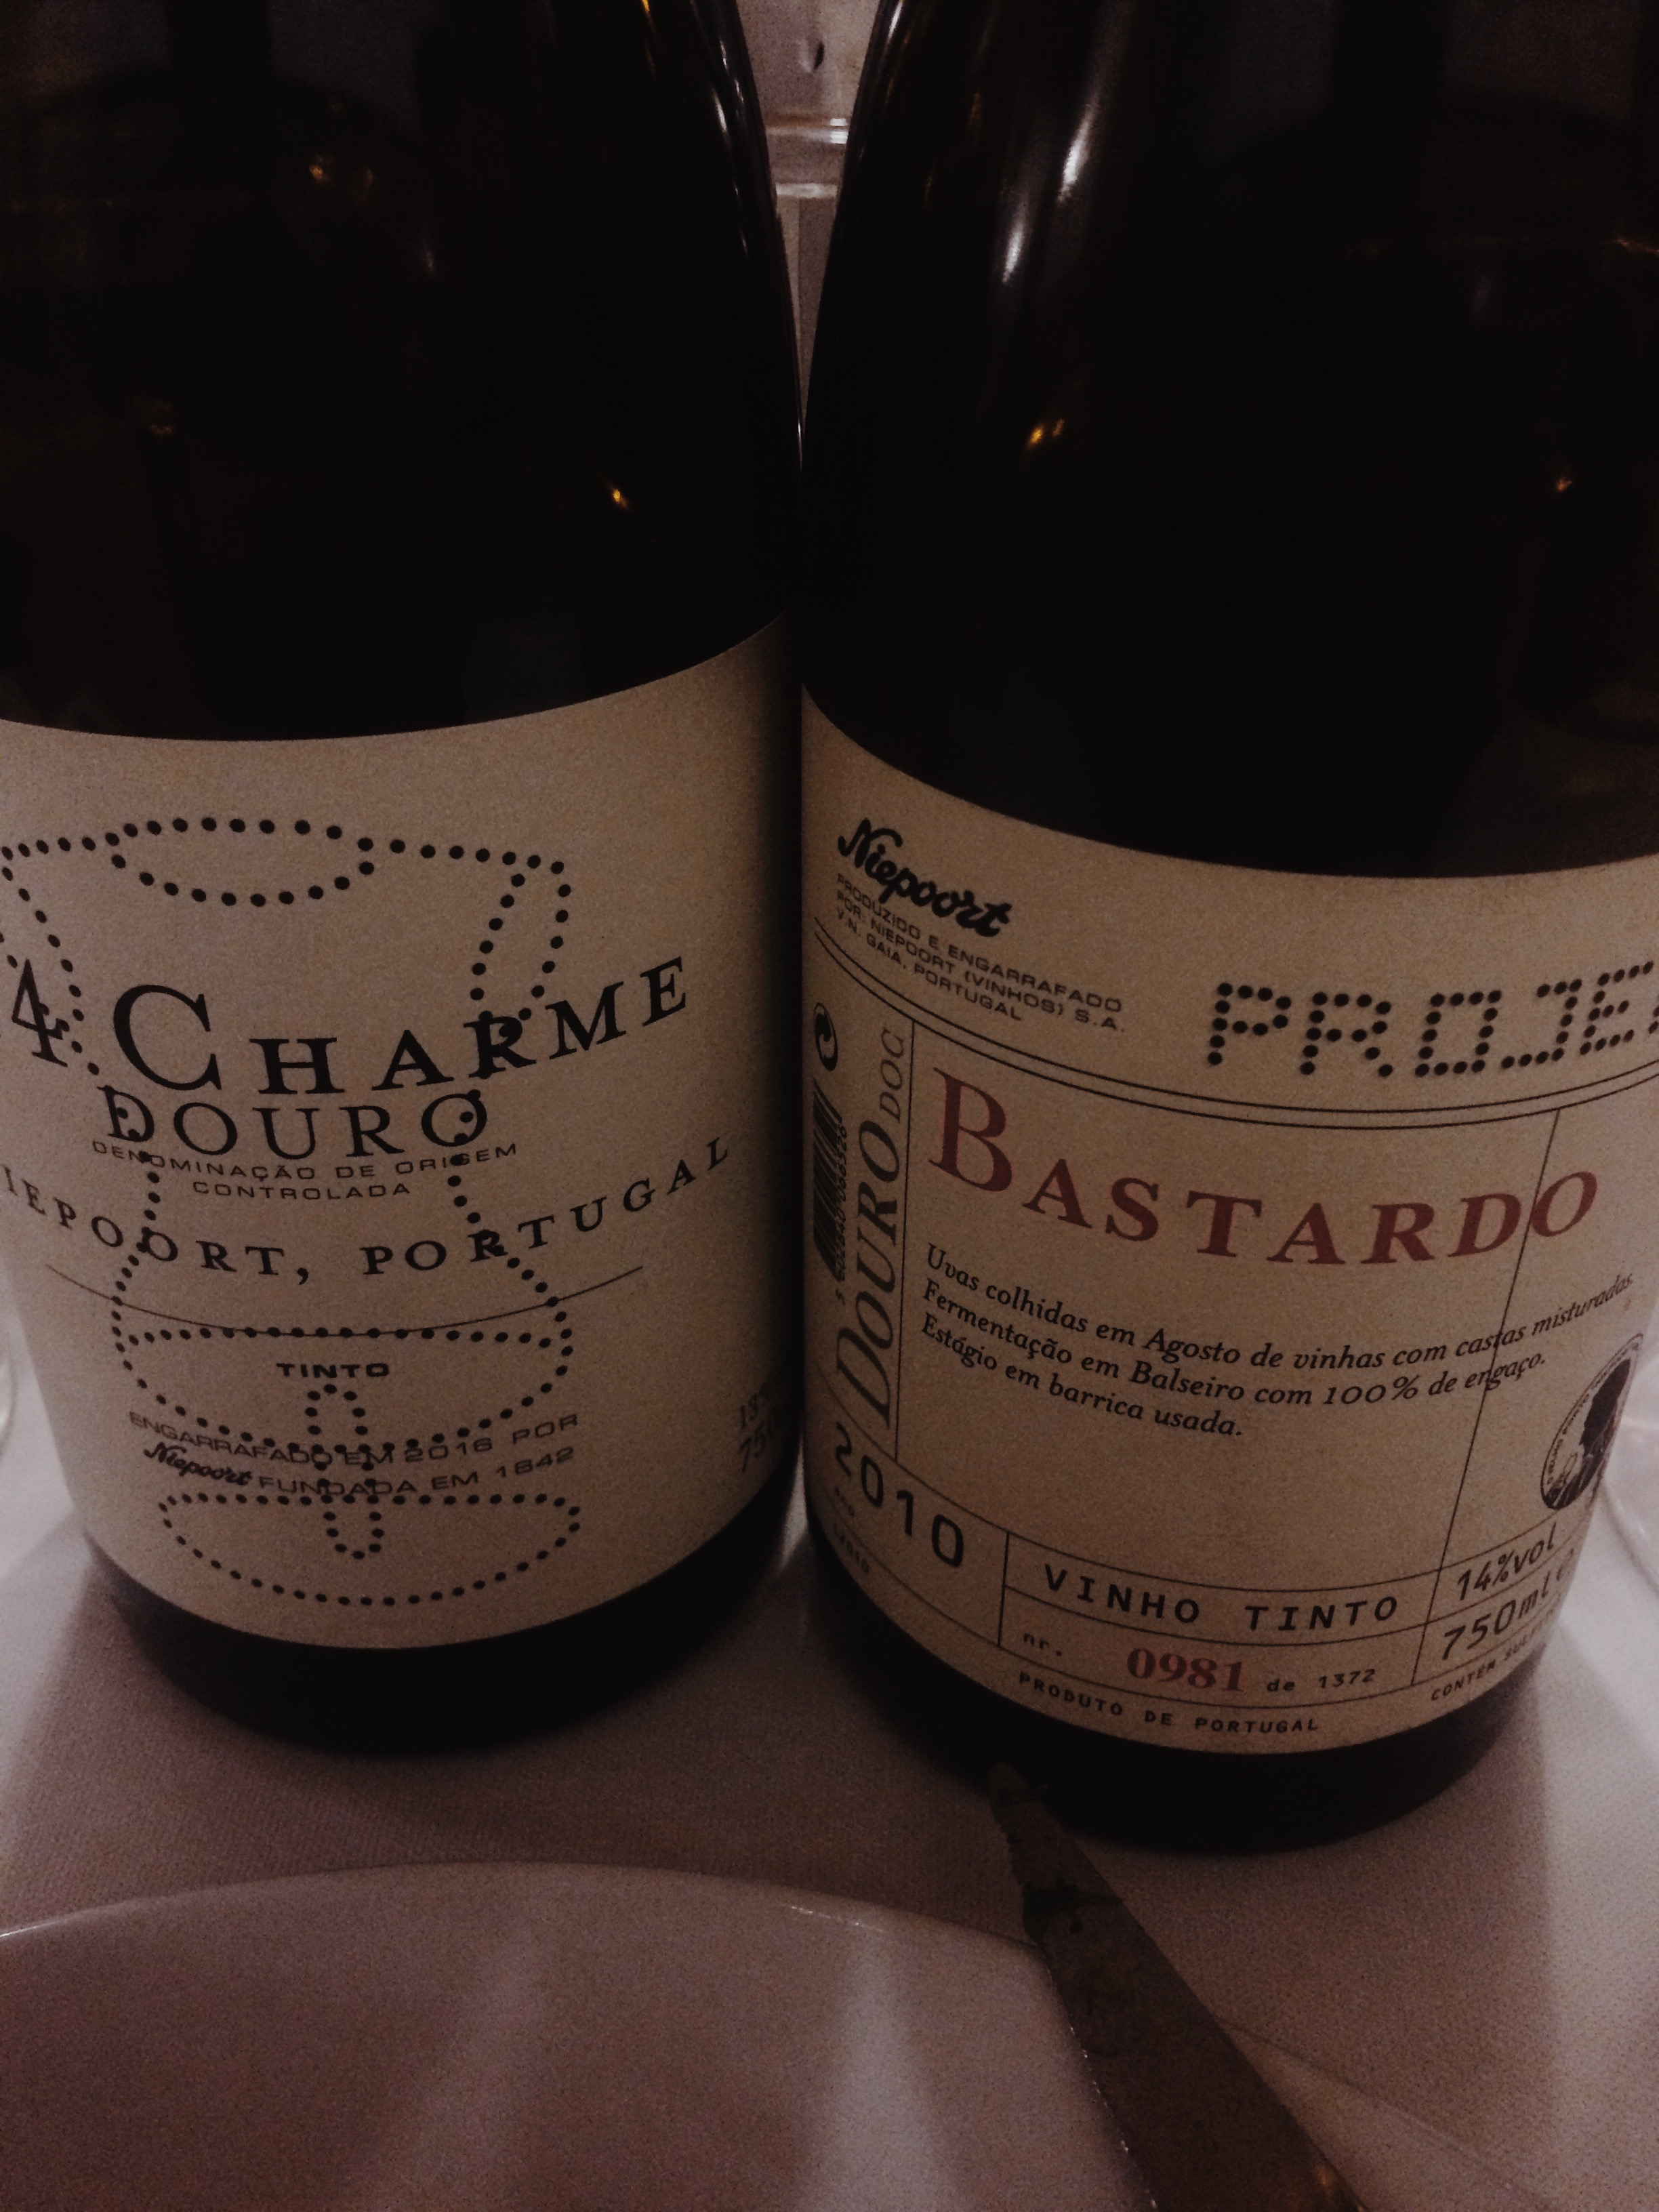 Charme and Bastardo- my favourite companions of the night. Niepoort Vinhos. by Christopher Sealy